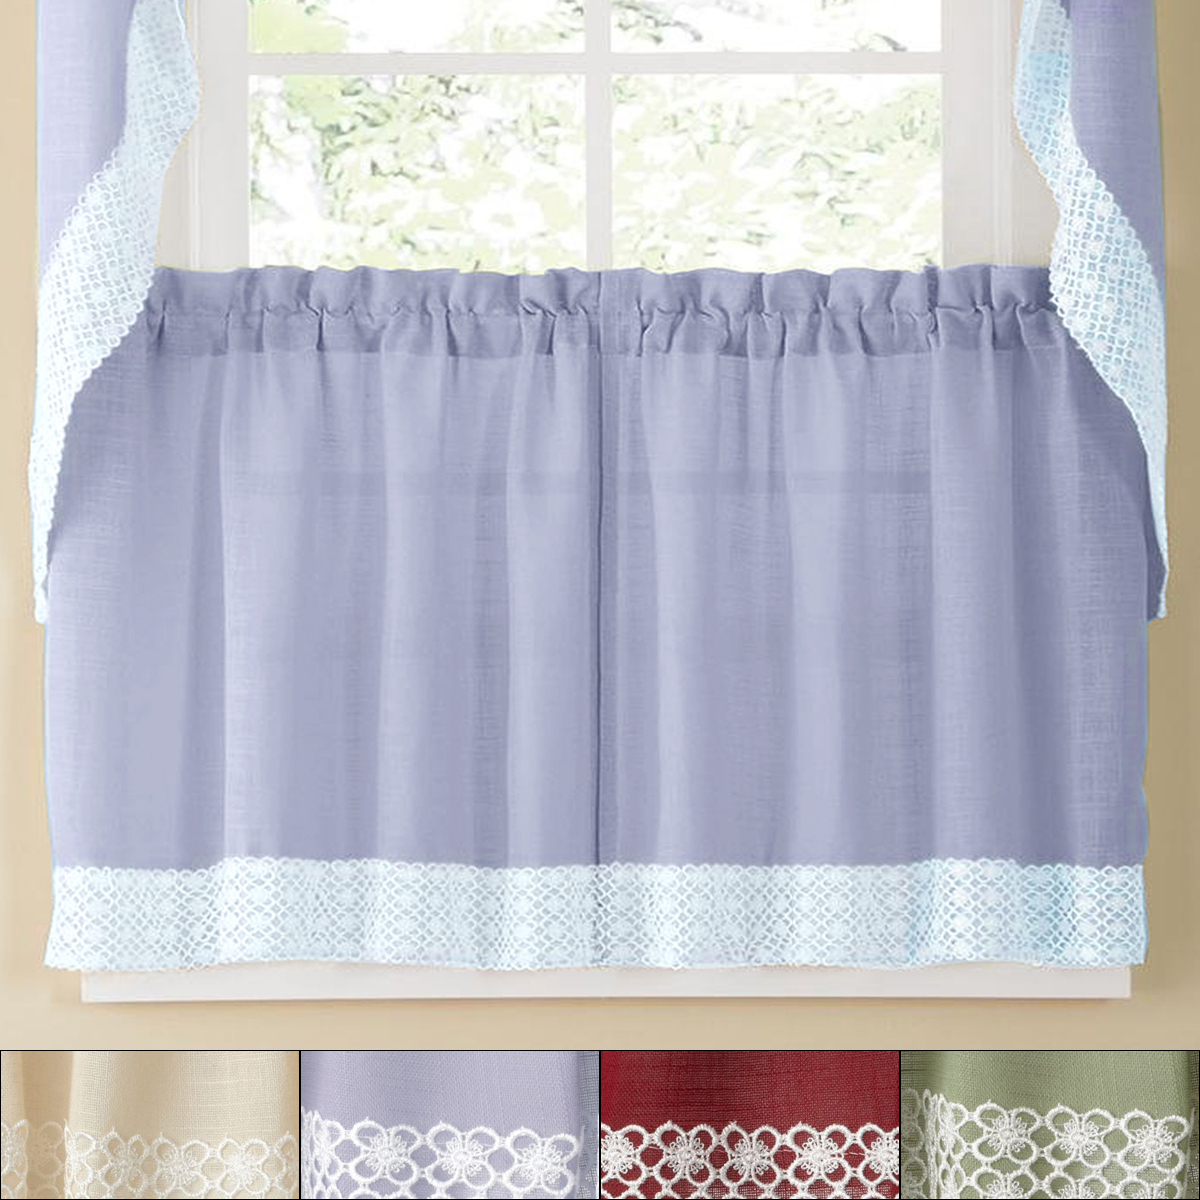 2020 Country Style Curtain Parts With White Daisy Lace Accent Within Details About Salem Kitchen Window Curtain W/ Lace Trim – 24 X 60 Tier Pair (View 12 of 20)